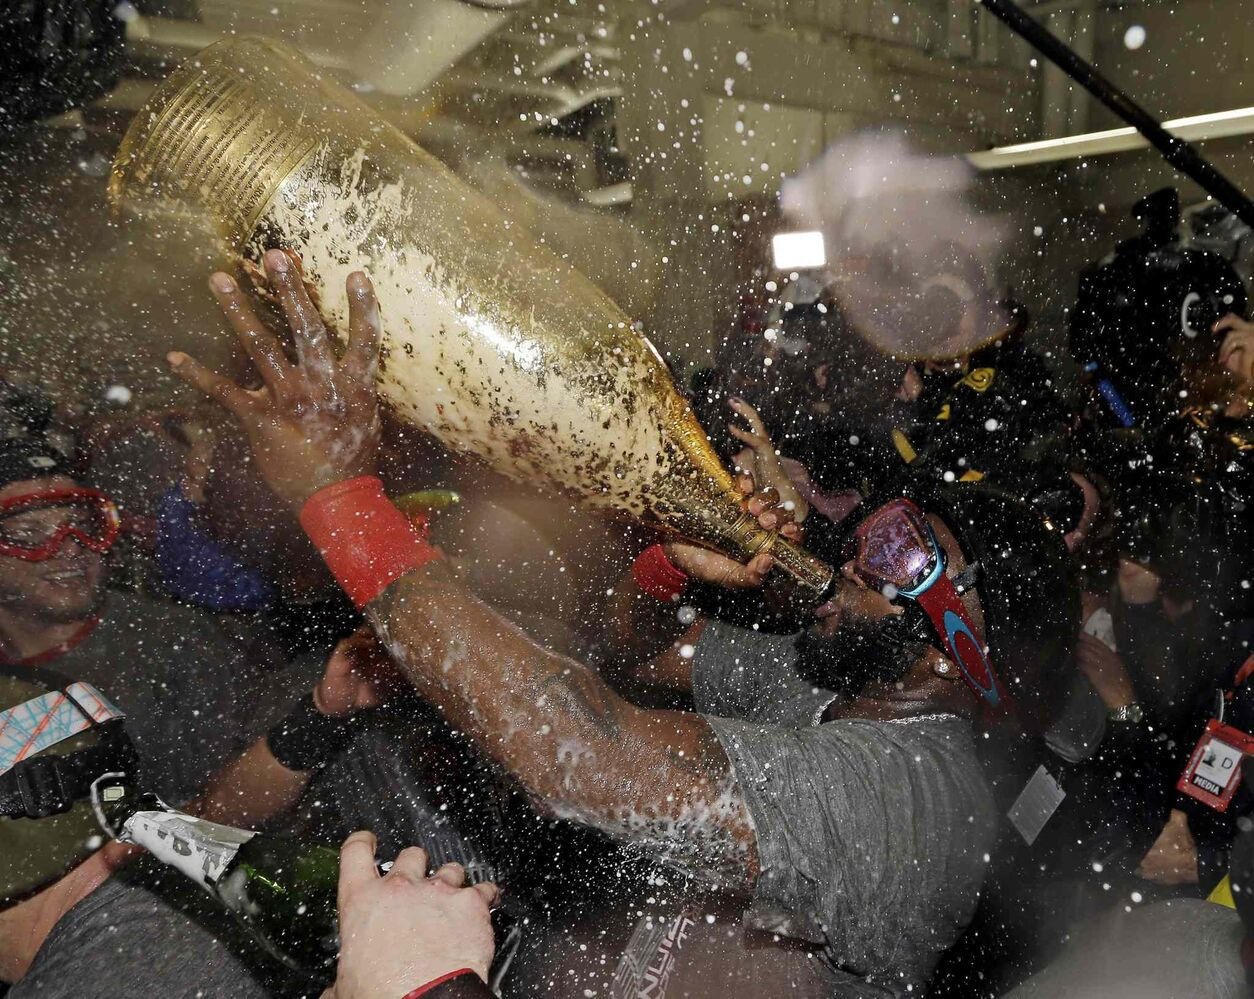 Boston Red Sox's David Ortiz drinks out of a giant bottle of Champagne as he celebrates with teammates. (David J. Phillip / The Associated Press)